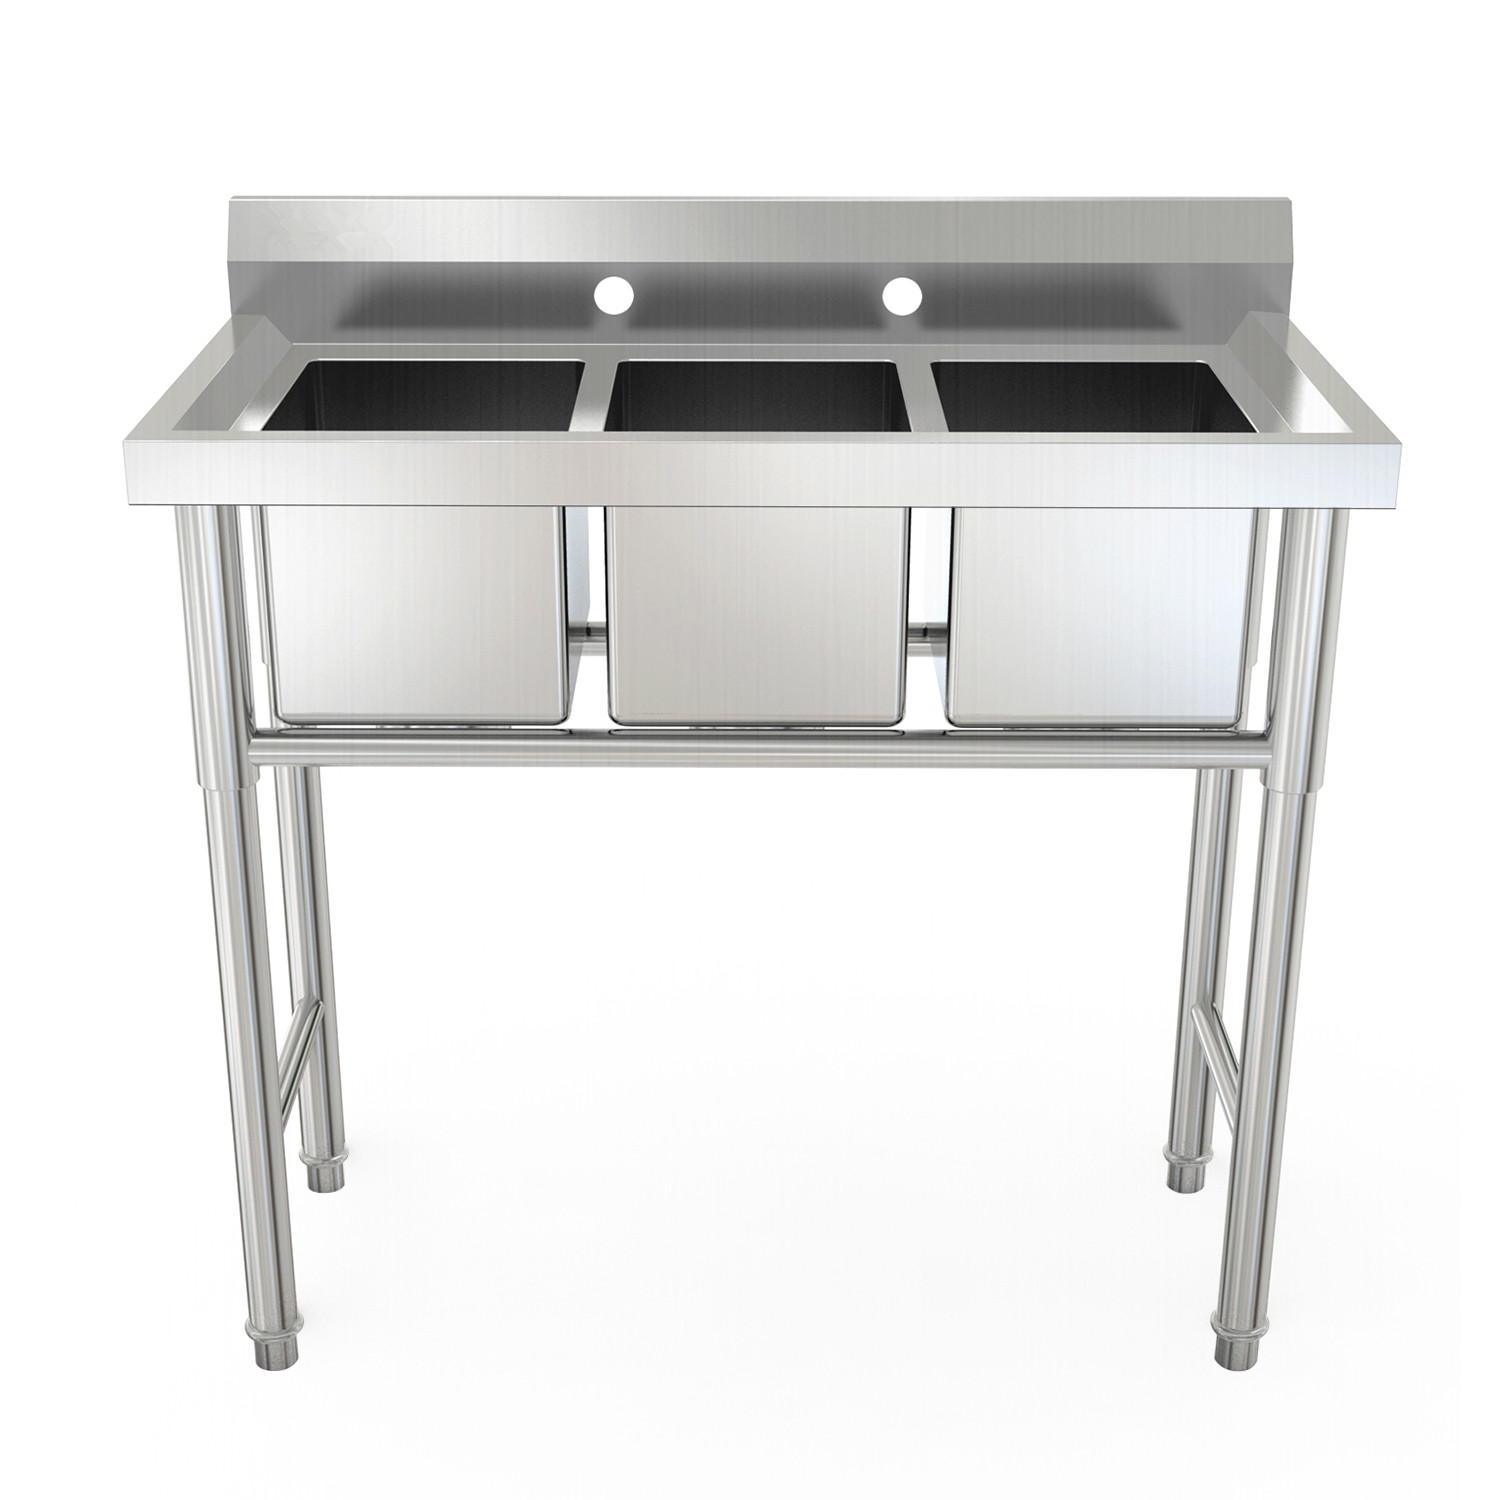 zimtown 39 wide heavy duty 3 compartment commercial stainless steel sink walmart com